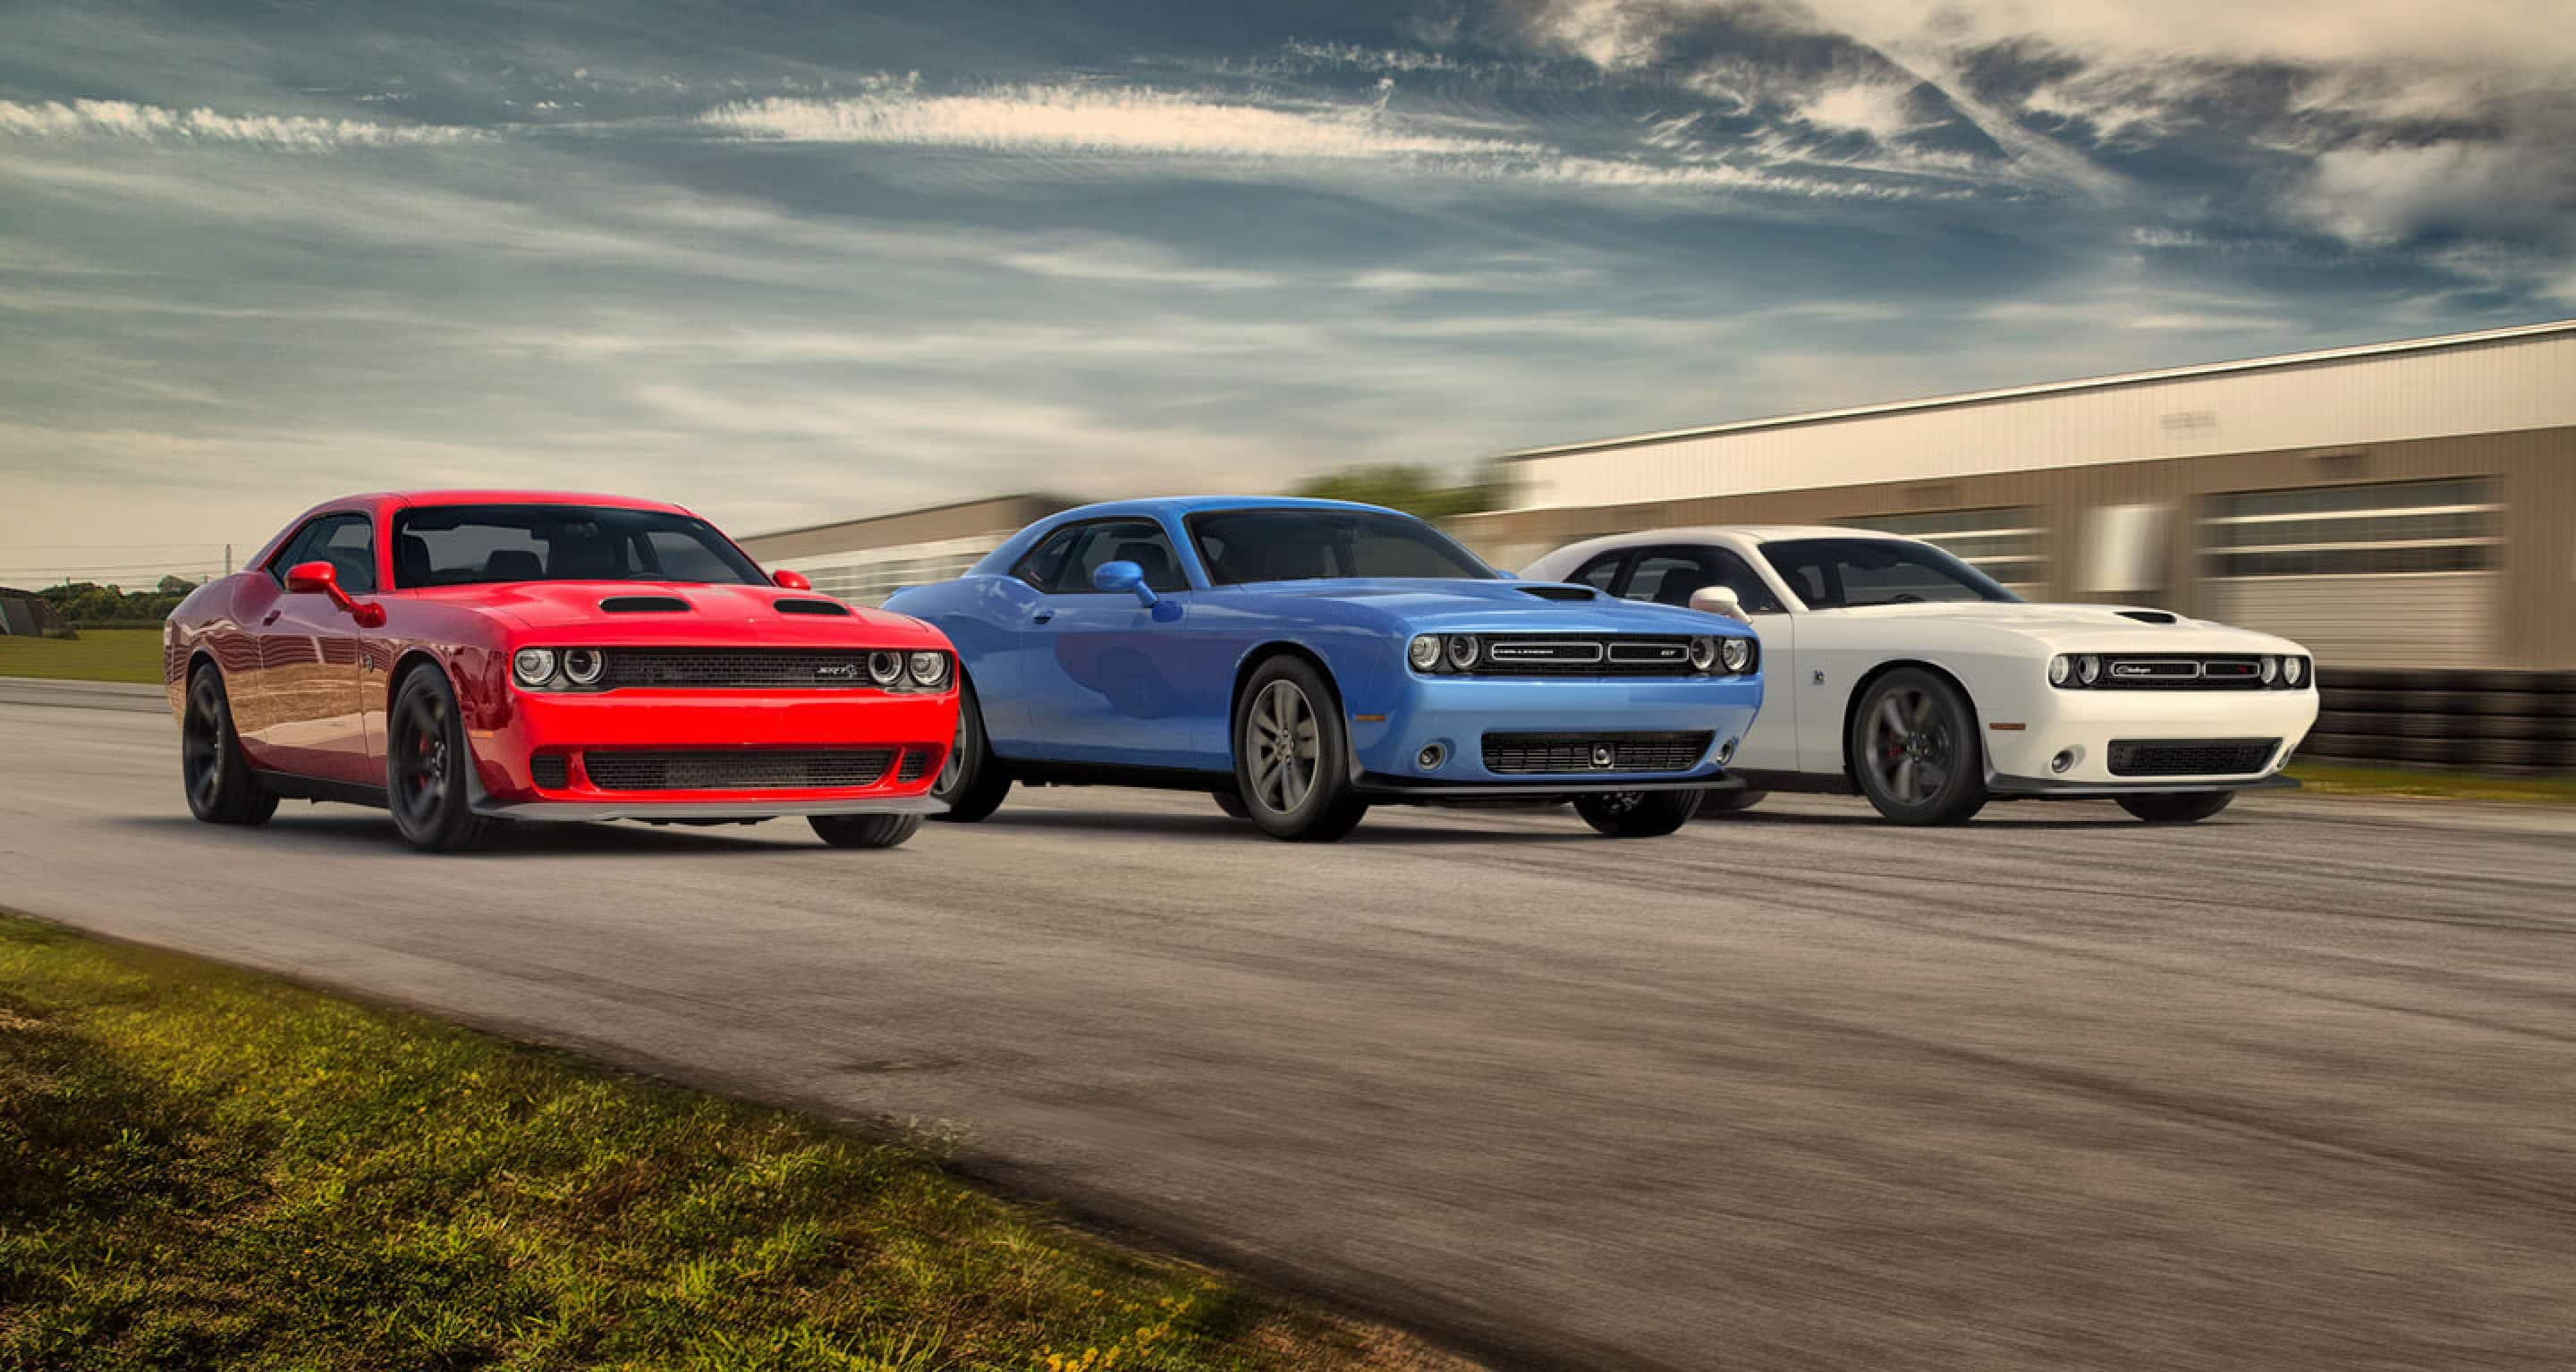 215ae5f2fd66 The Dodge Challenger is one of those vehicles that has long been known for  its powerful HEMI engine